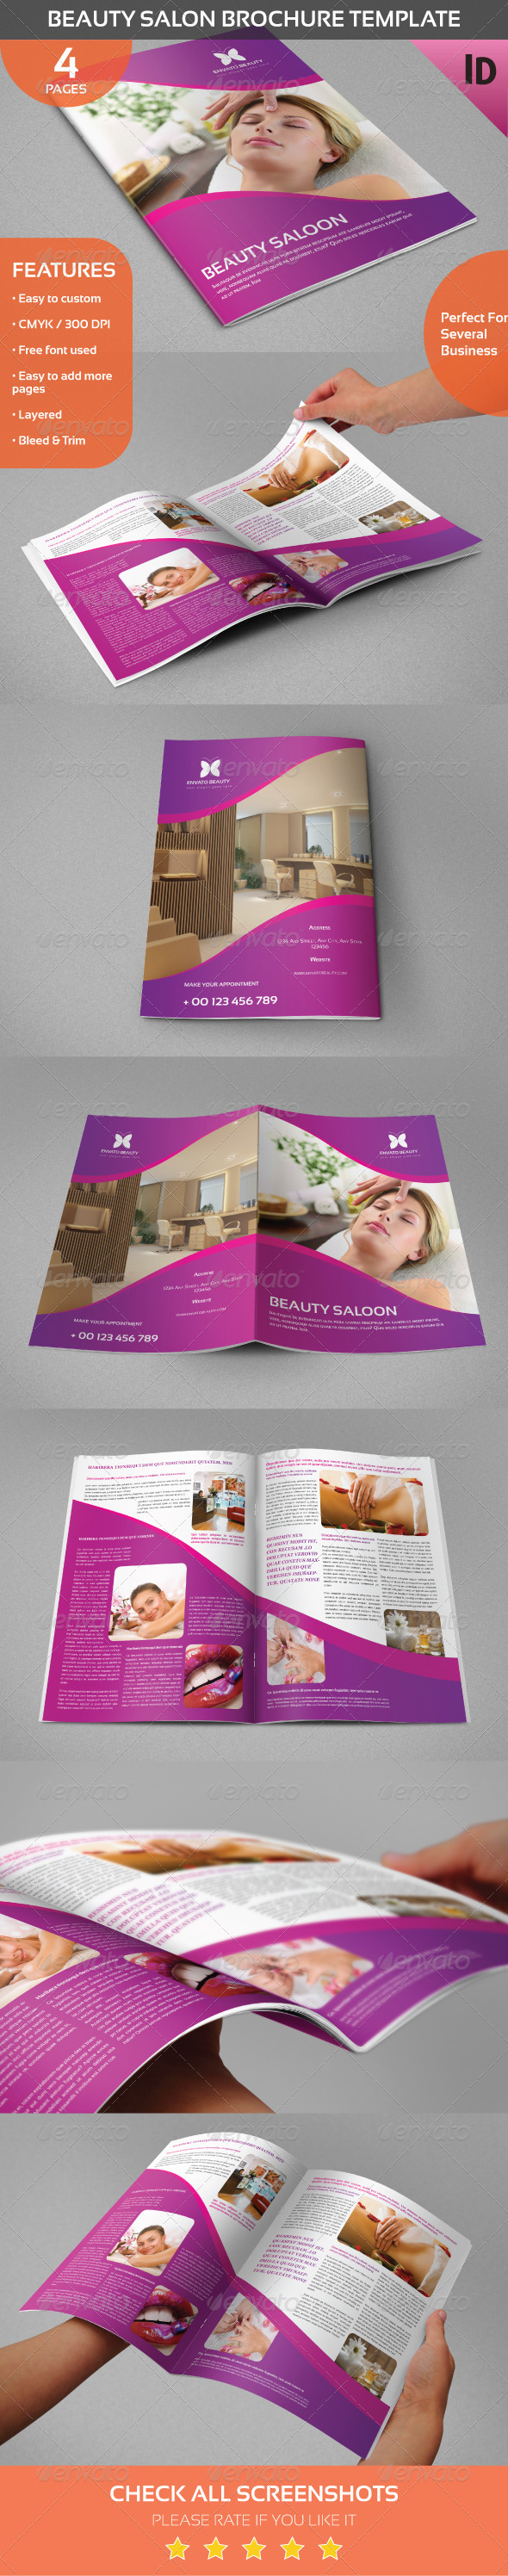 GraphicRiver Beauty Salon Brochure Template 8429111